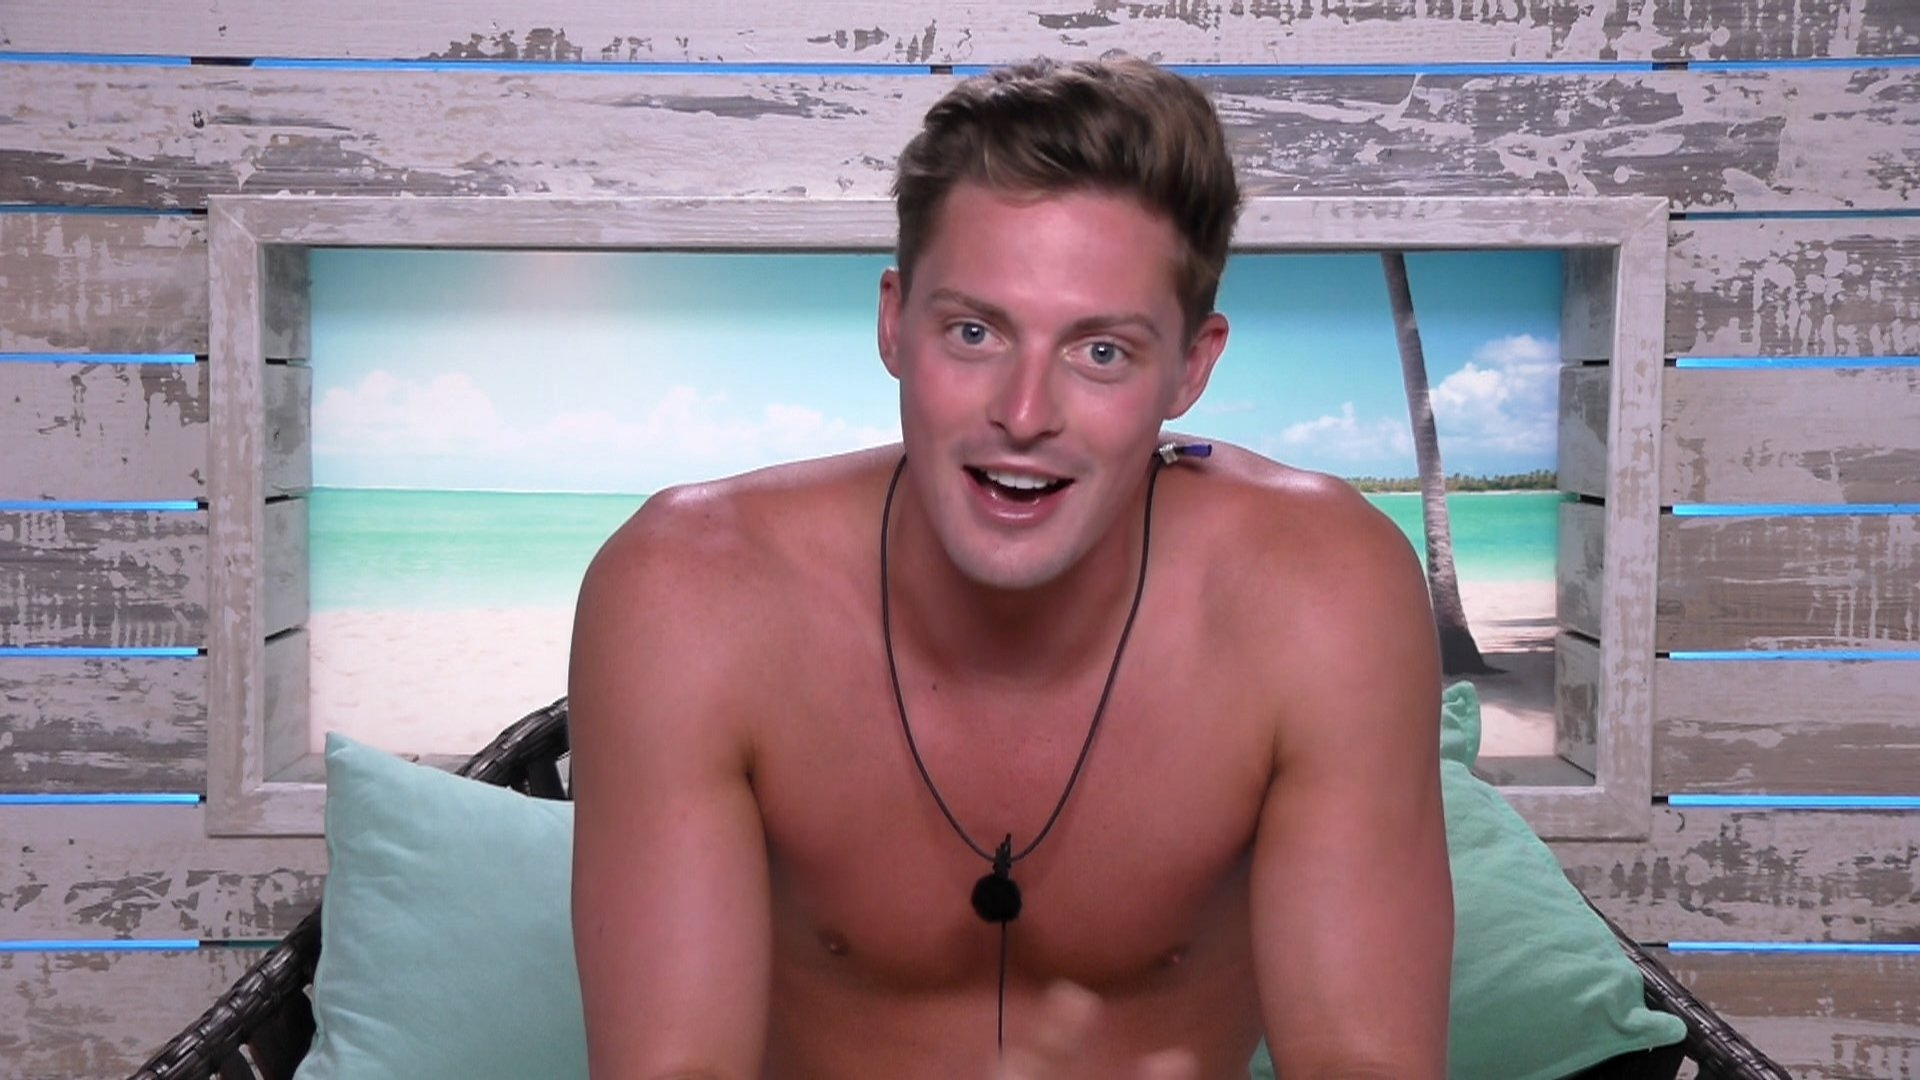 We need to talk about Love Island's Alex and how his treatment of women is actually quite dangerous